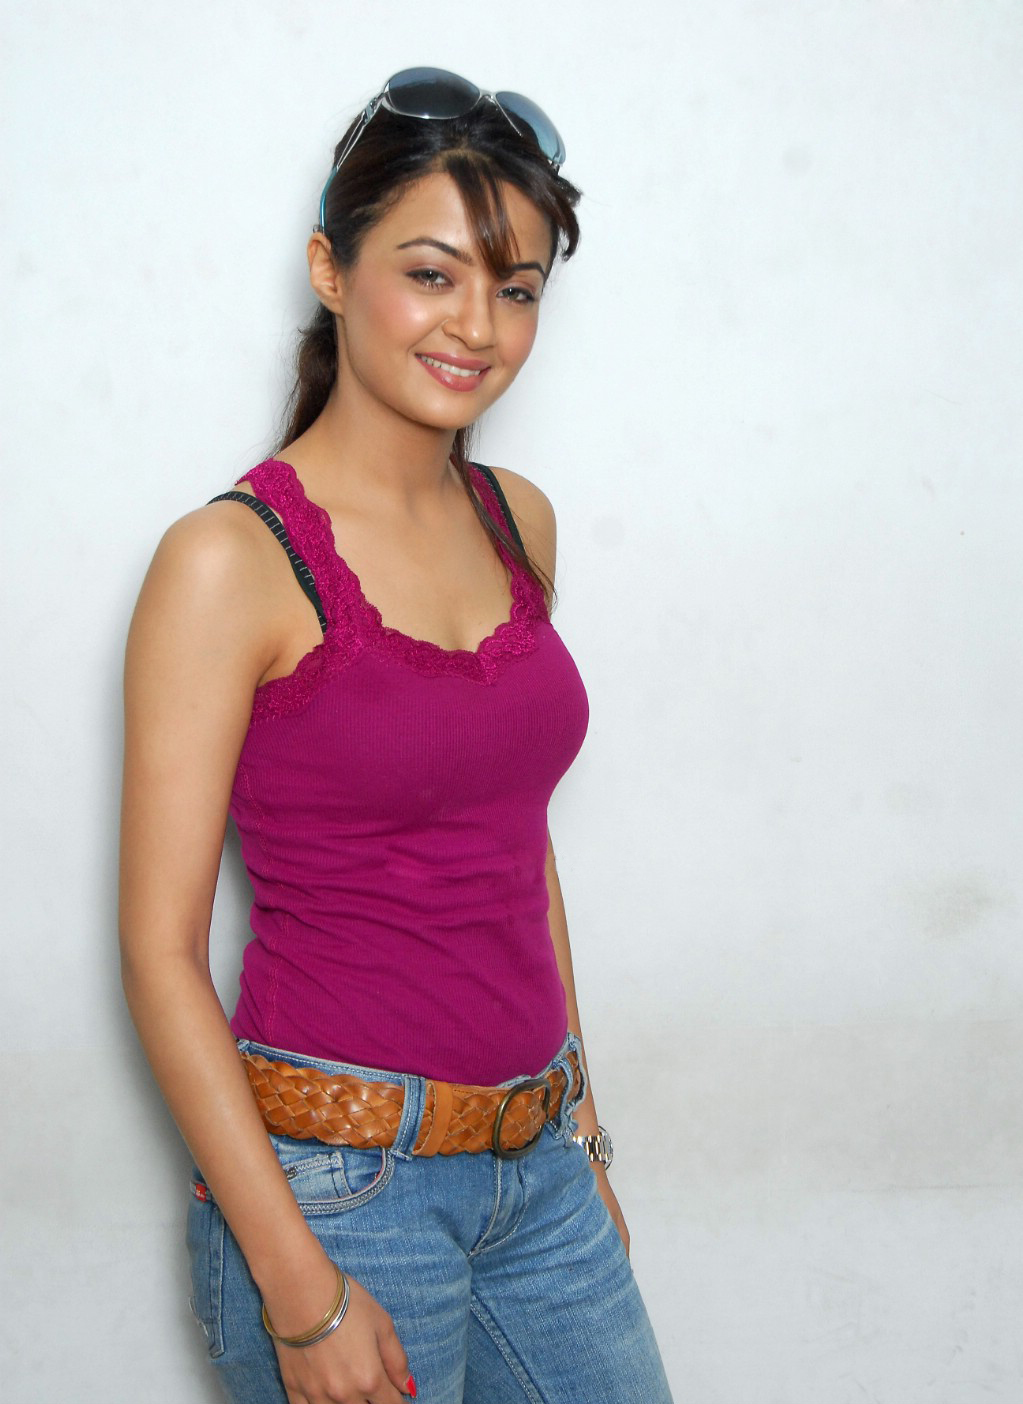 Actress surveen chawla pictures